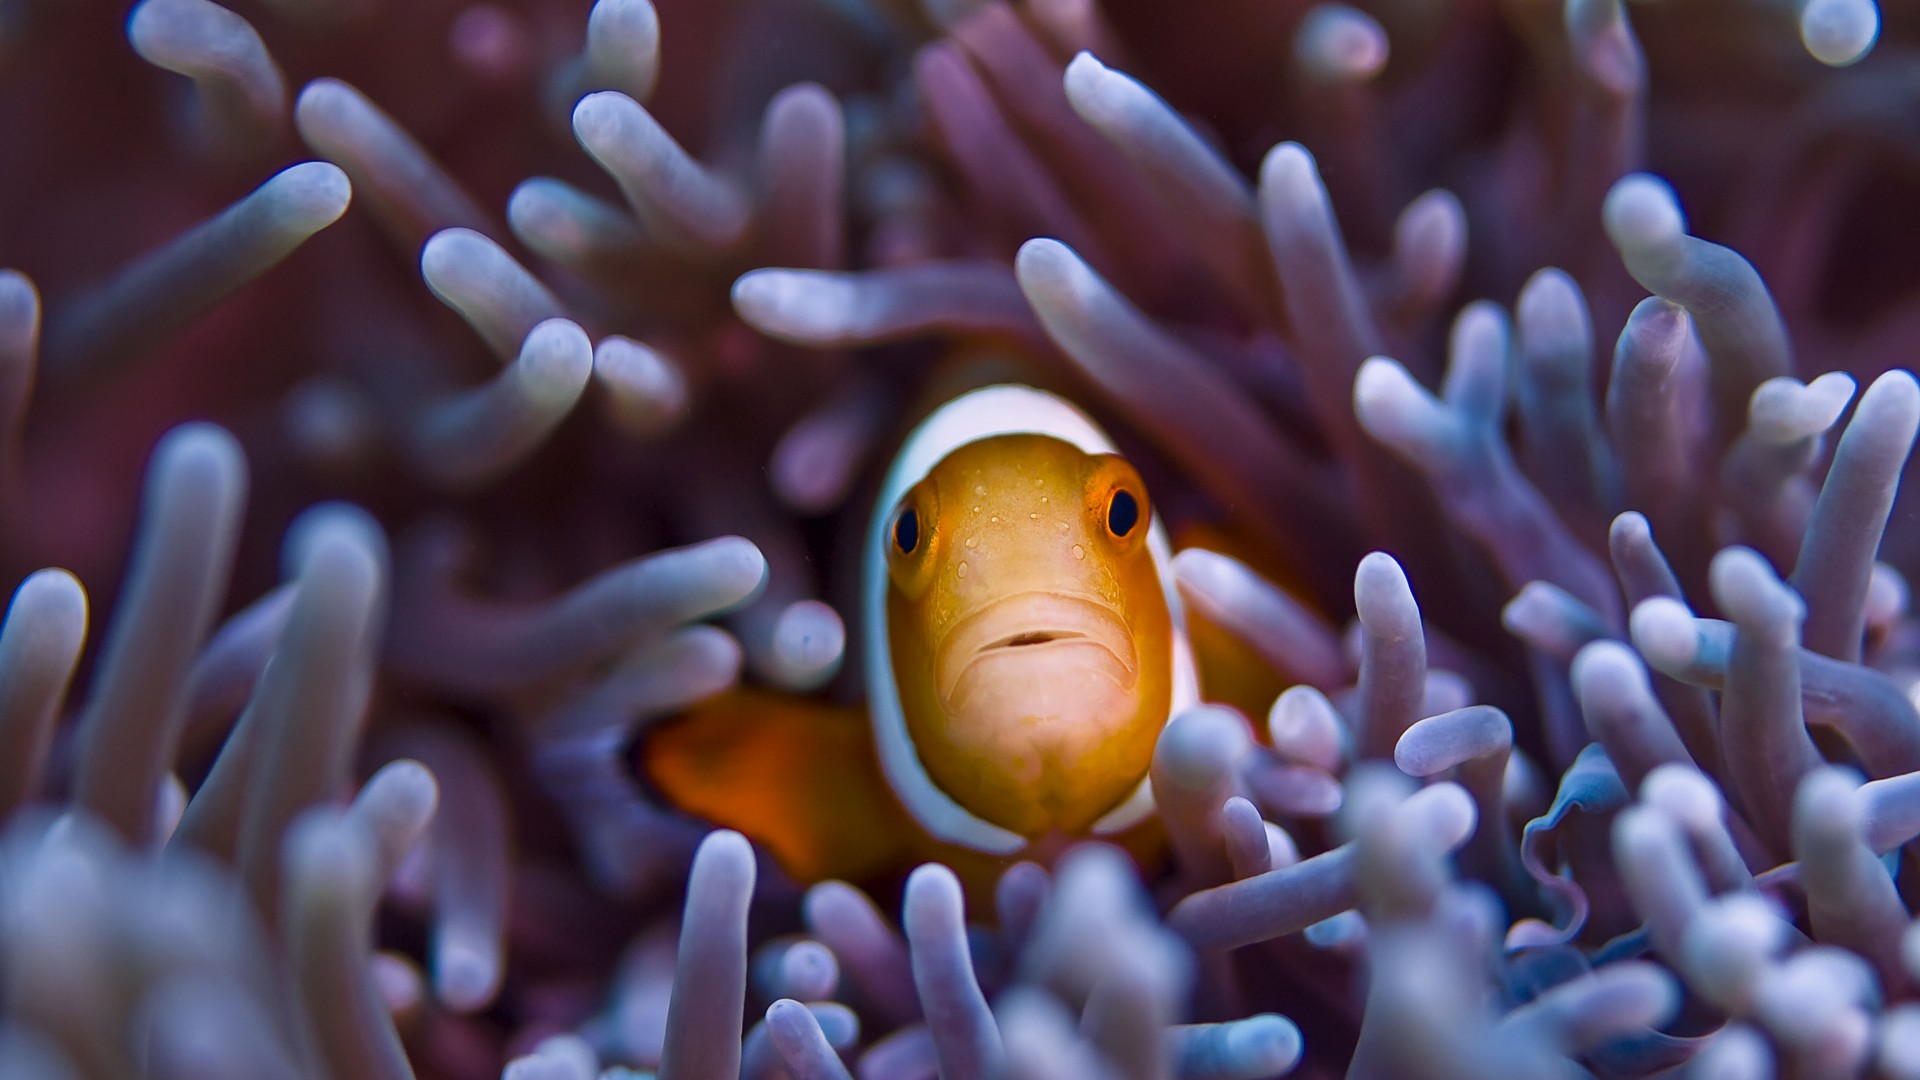 Clownfish, 5k, 4k wallpaper, Gili, Island, Bali, indian, pacific, underwater, diving, tourism, orange, sealife, sea, ocean, World's best diving sites (horizontal)